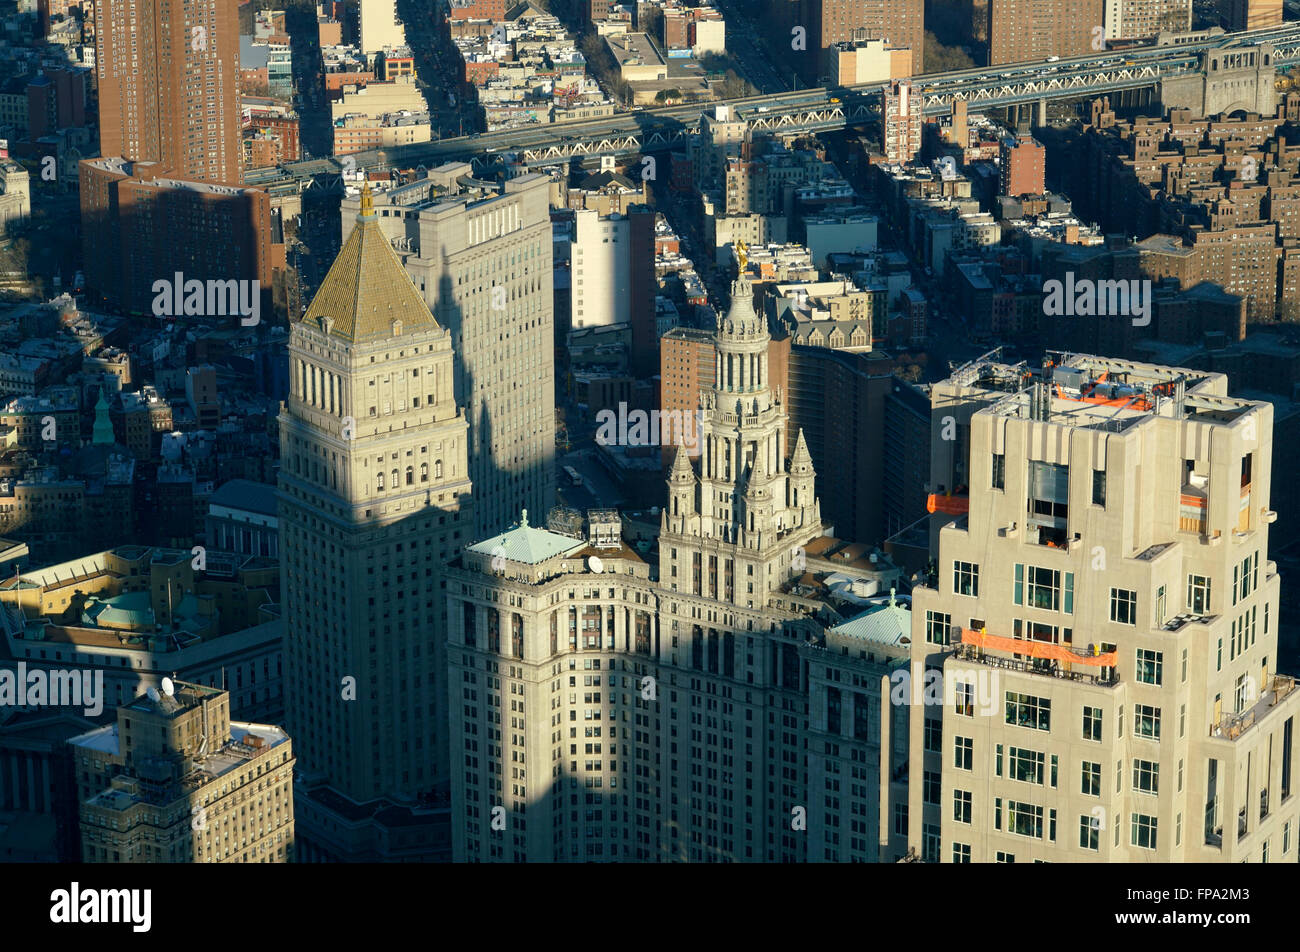 The view of Lower Manhattan with US Courthouse Building and Manhattan Municipal Building in foreground, New York - Stock Image